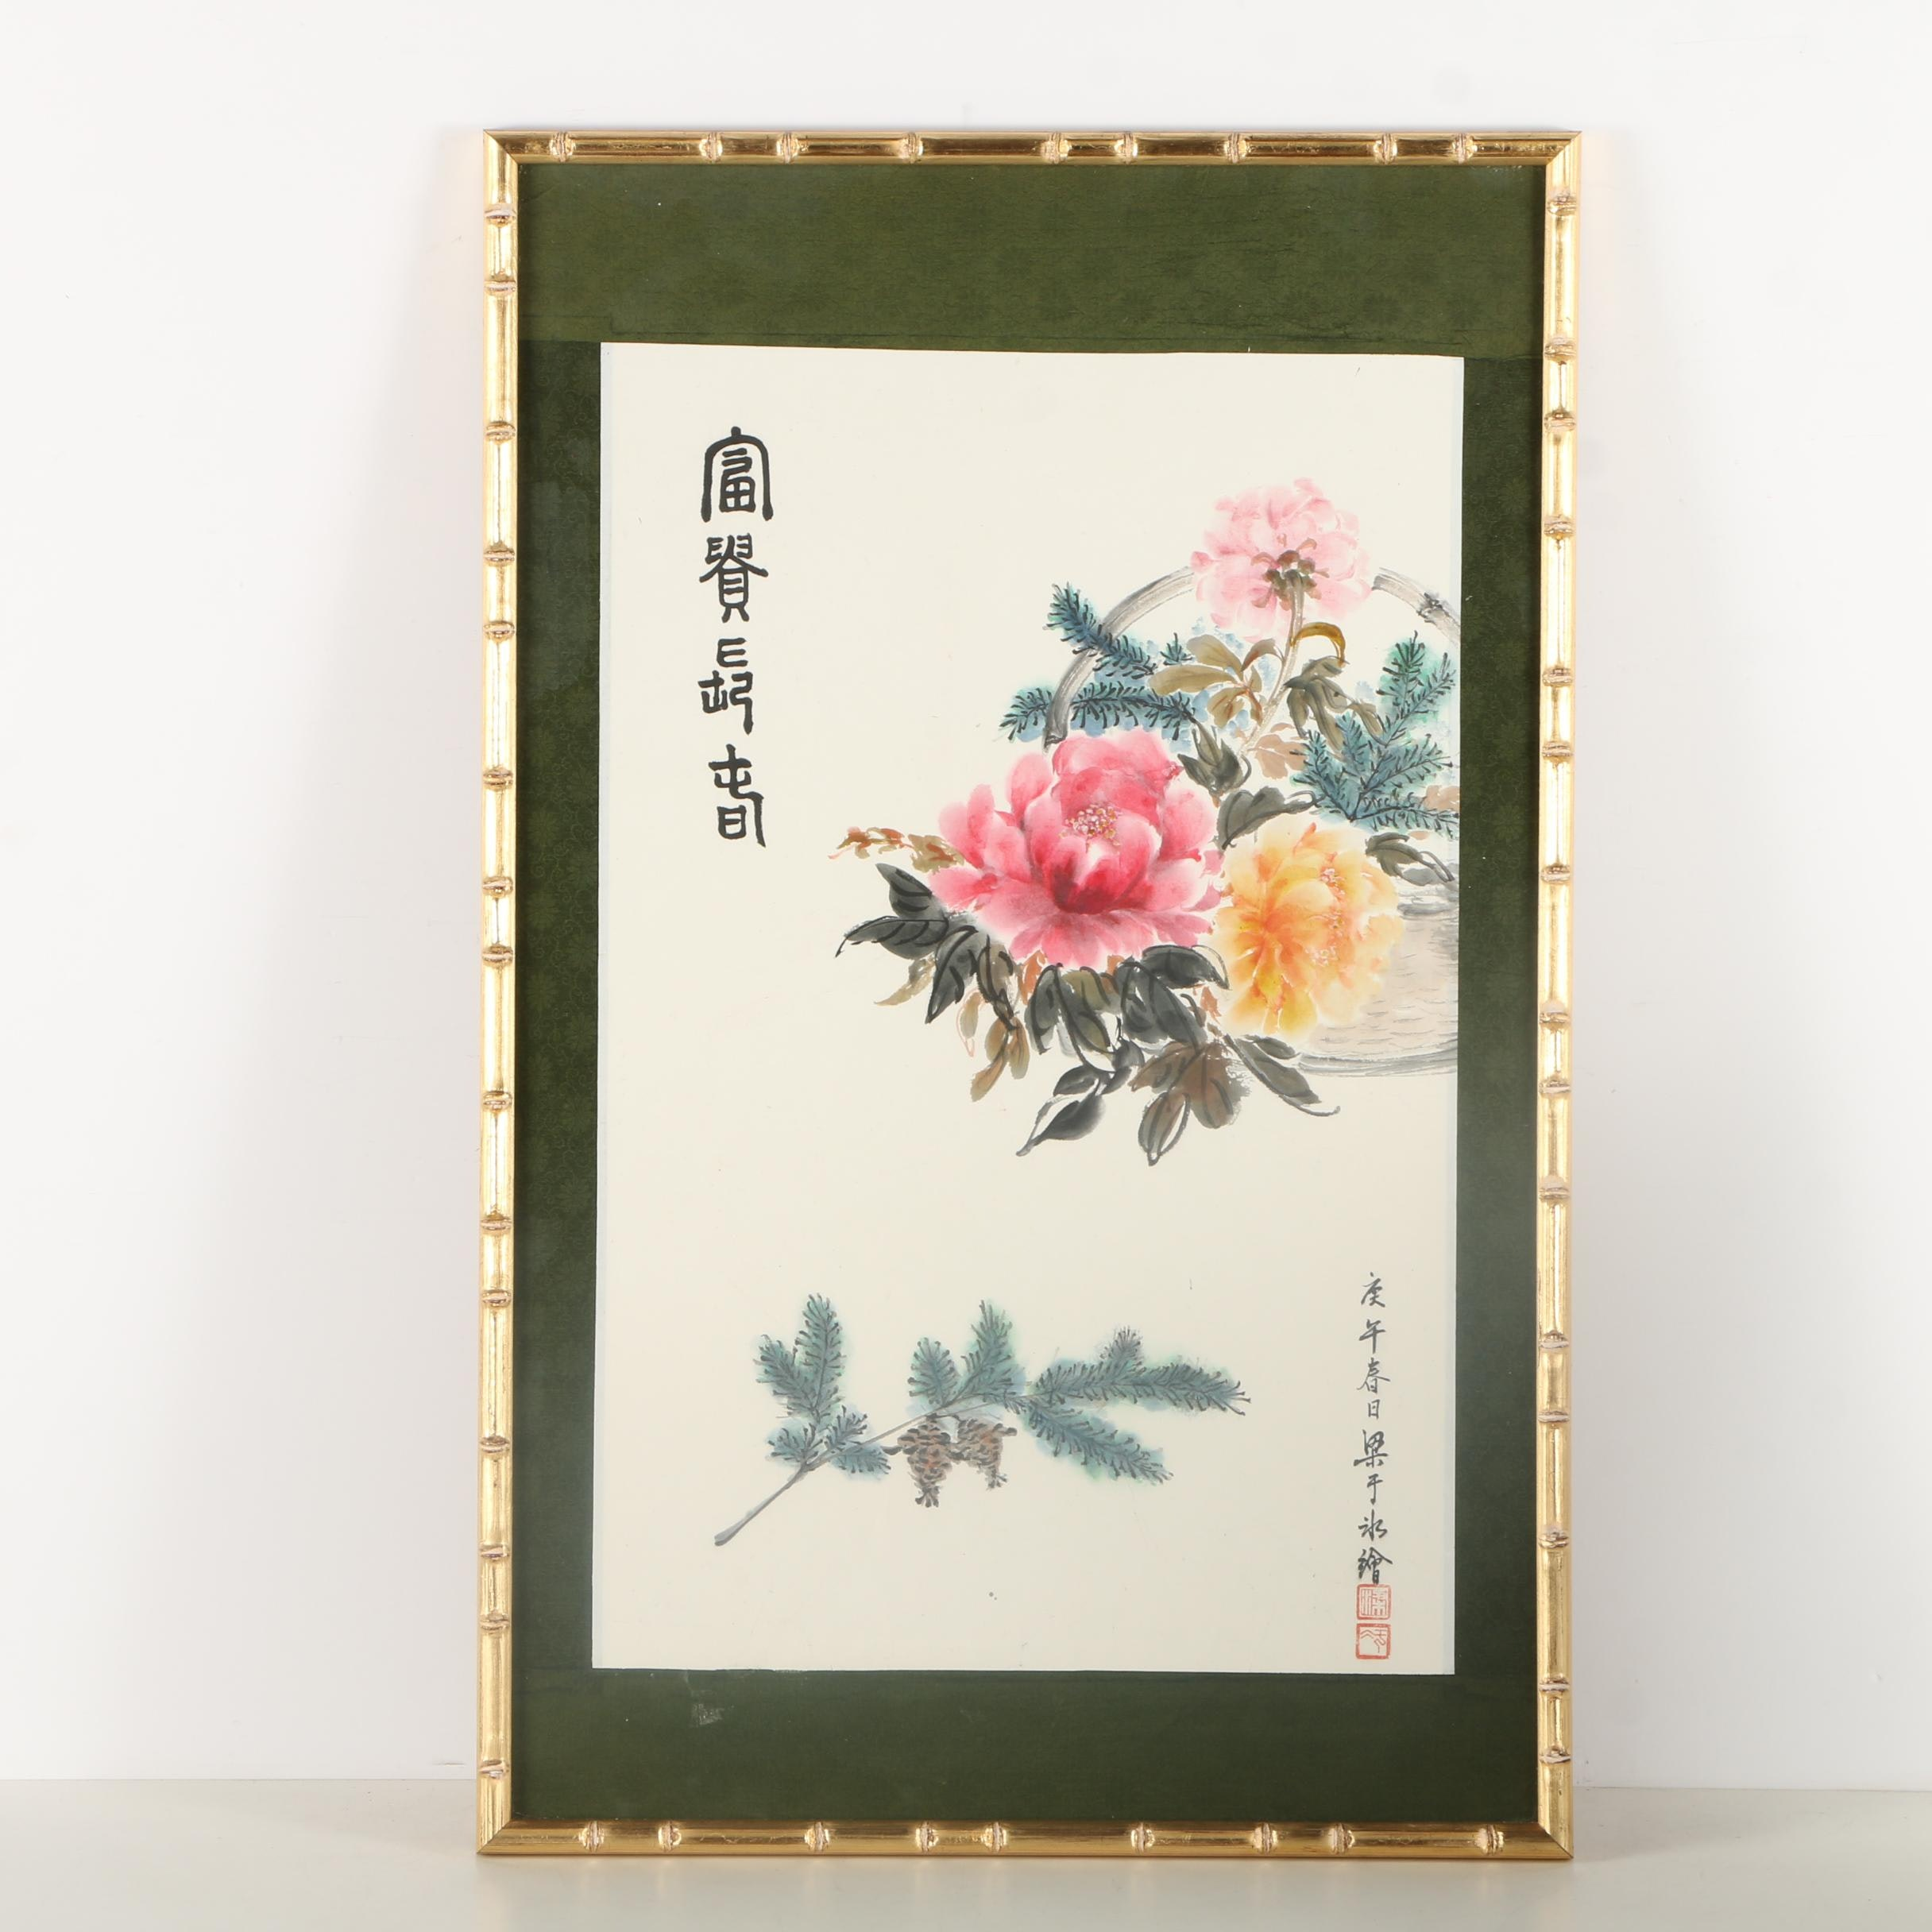 East Asian Style Watercolor and Ink Painting of Flowers